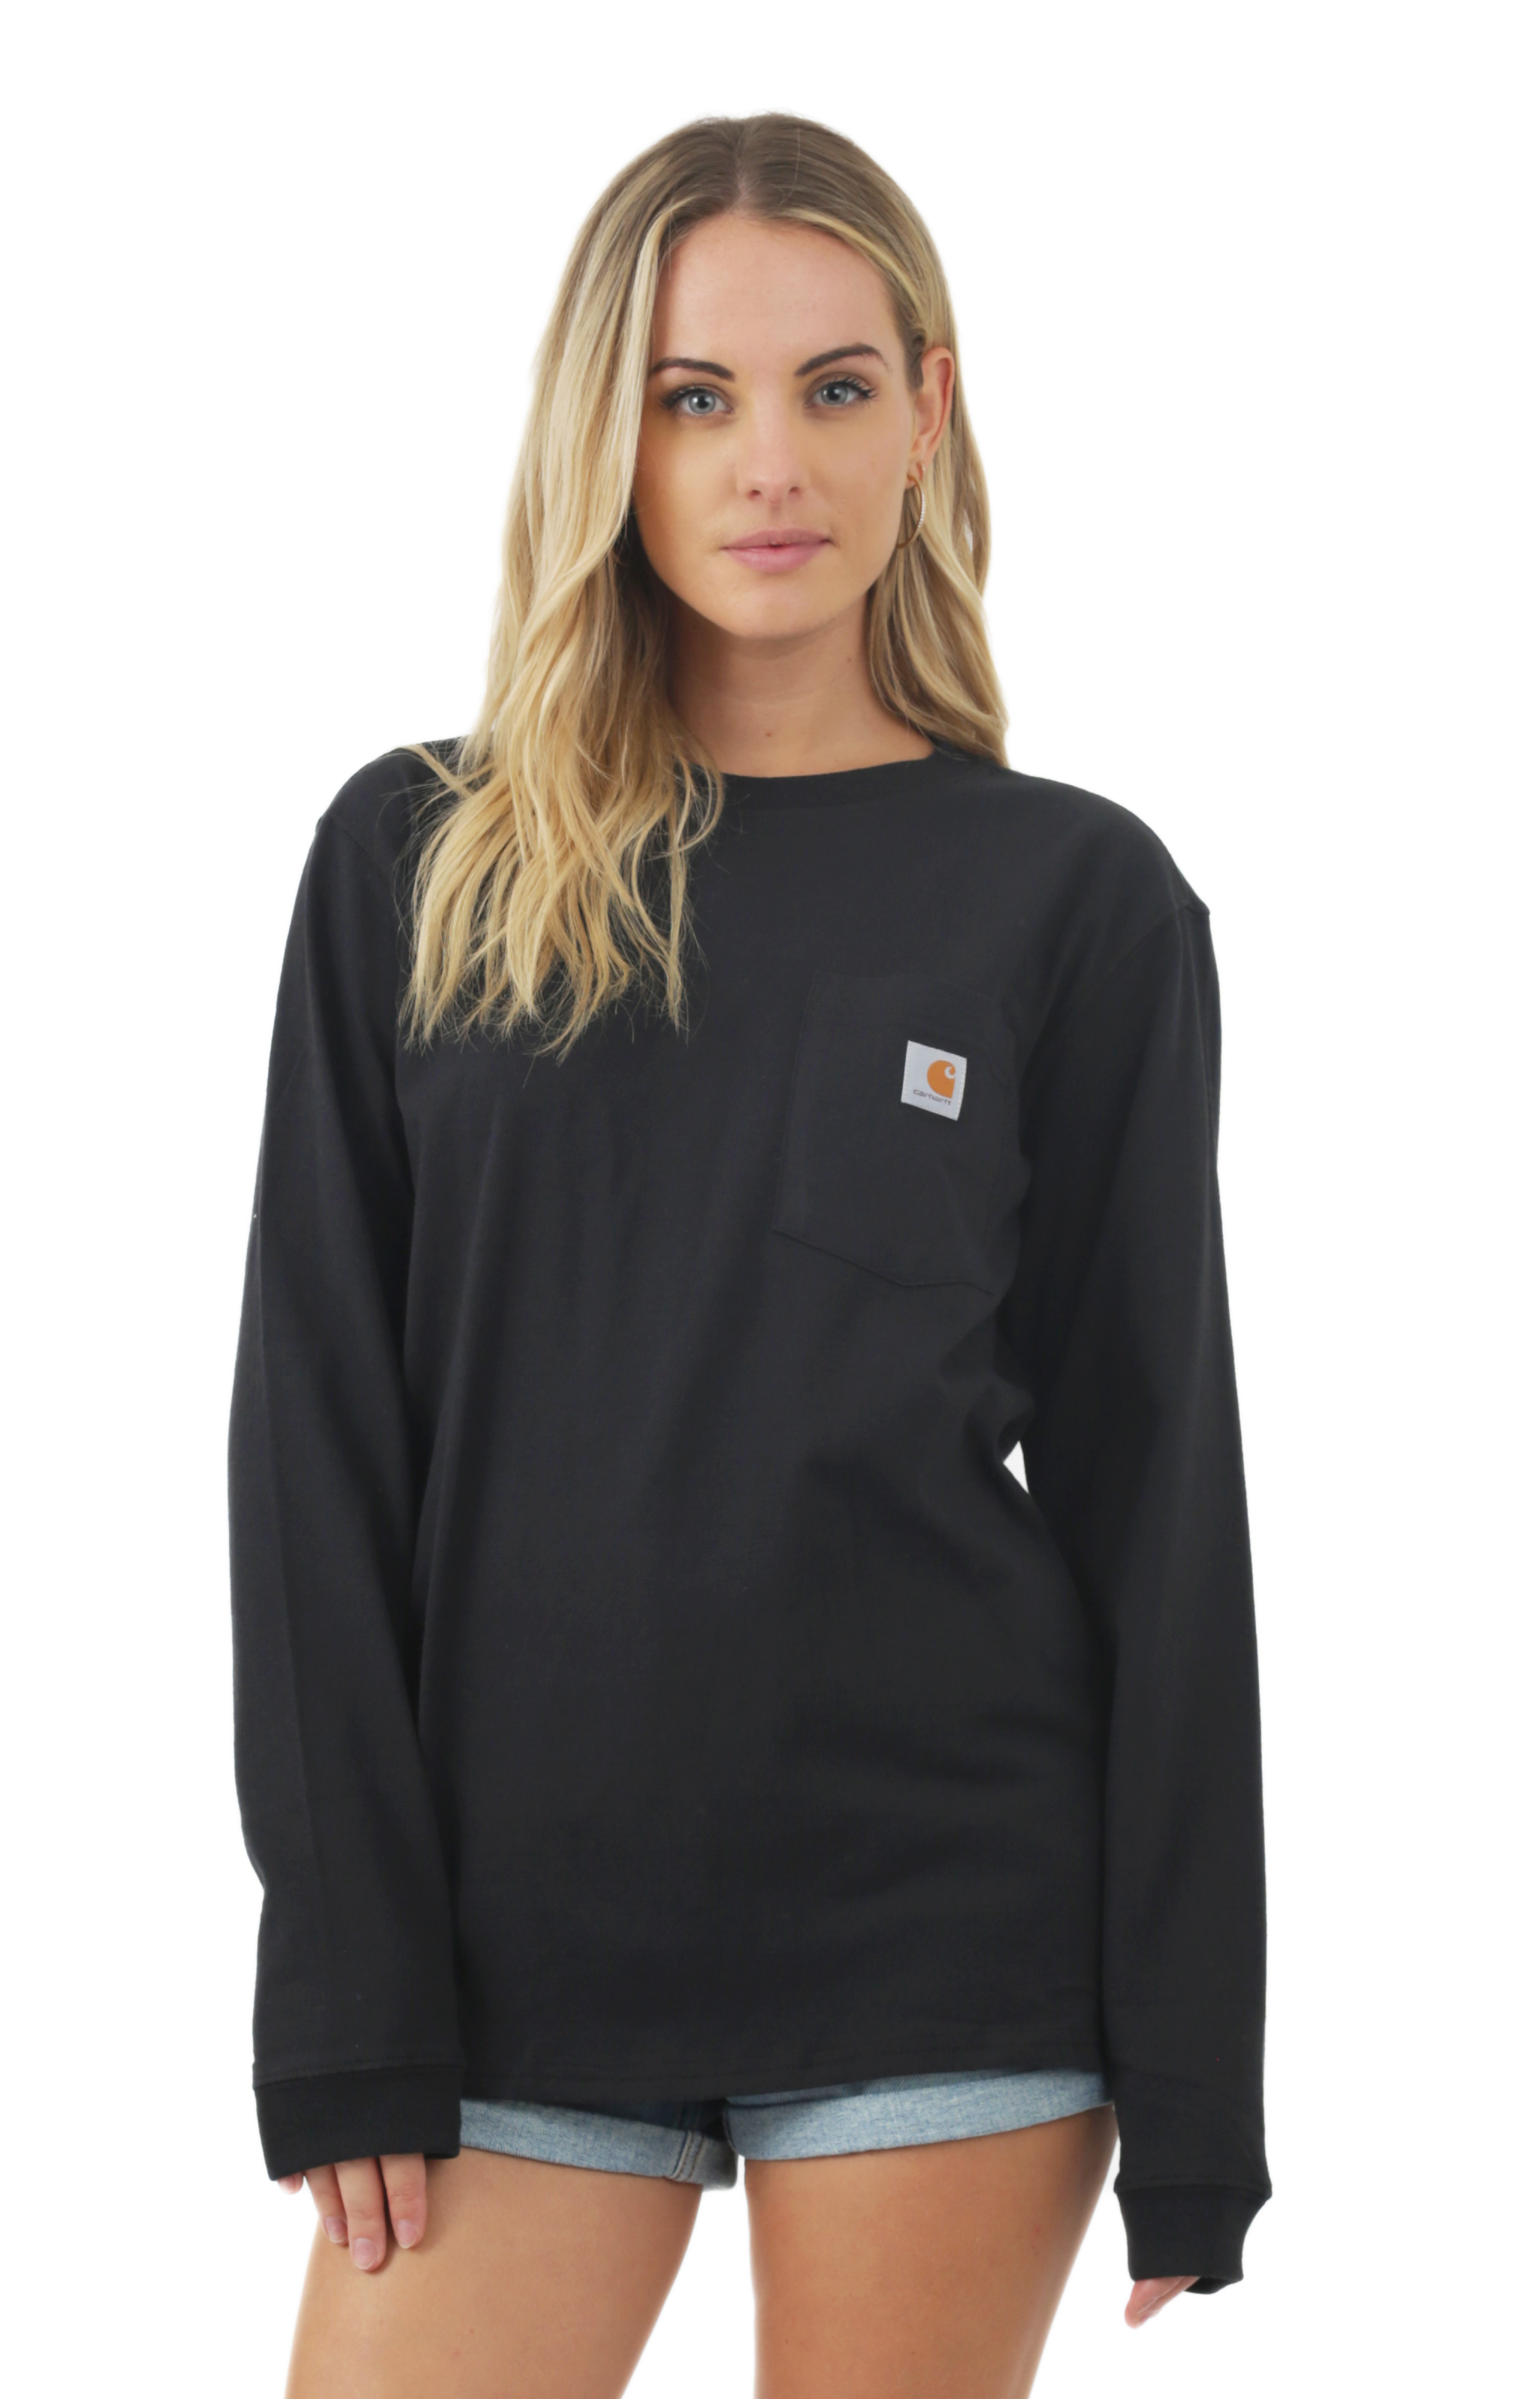 (103244) WK126 Workwear Pocket L/S Shirt - Black